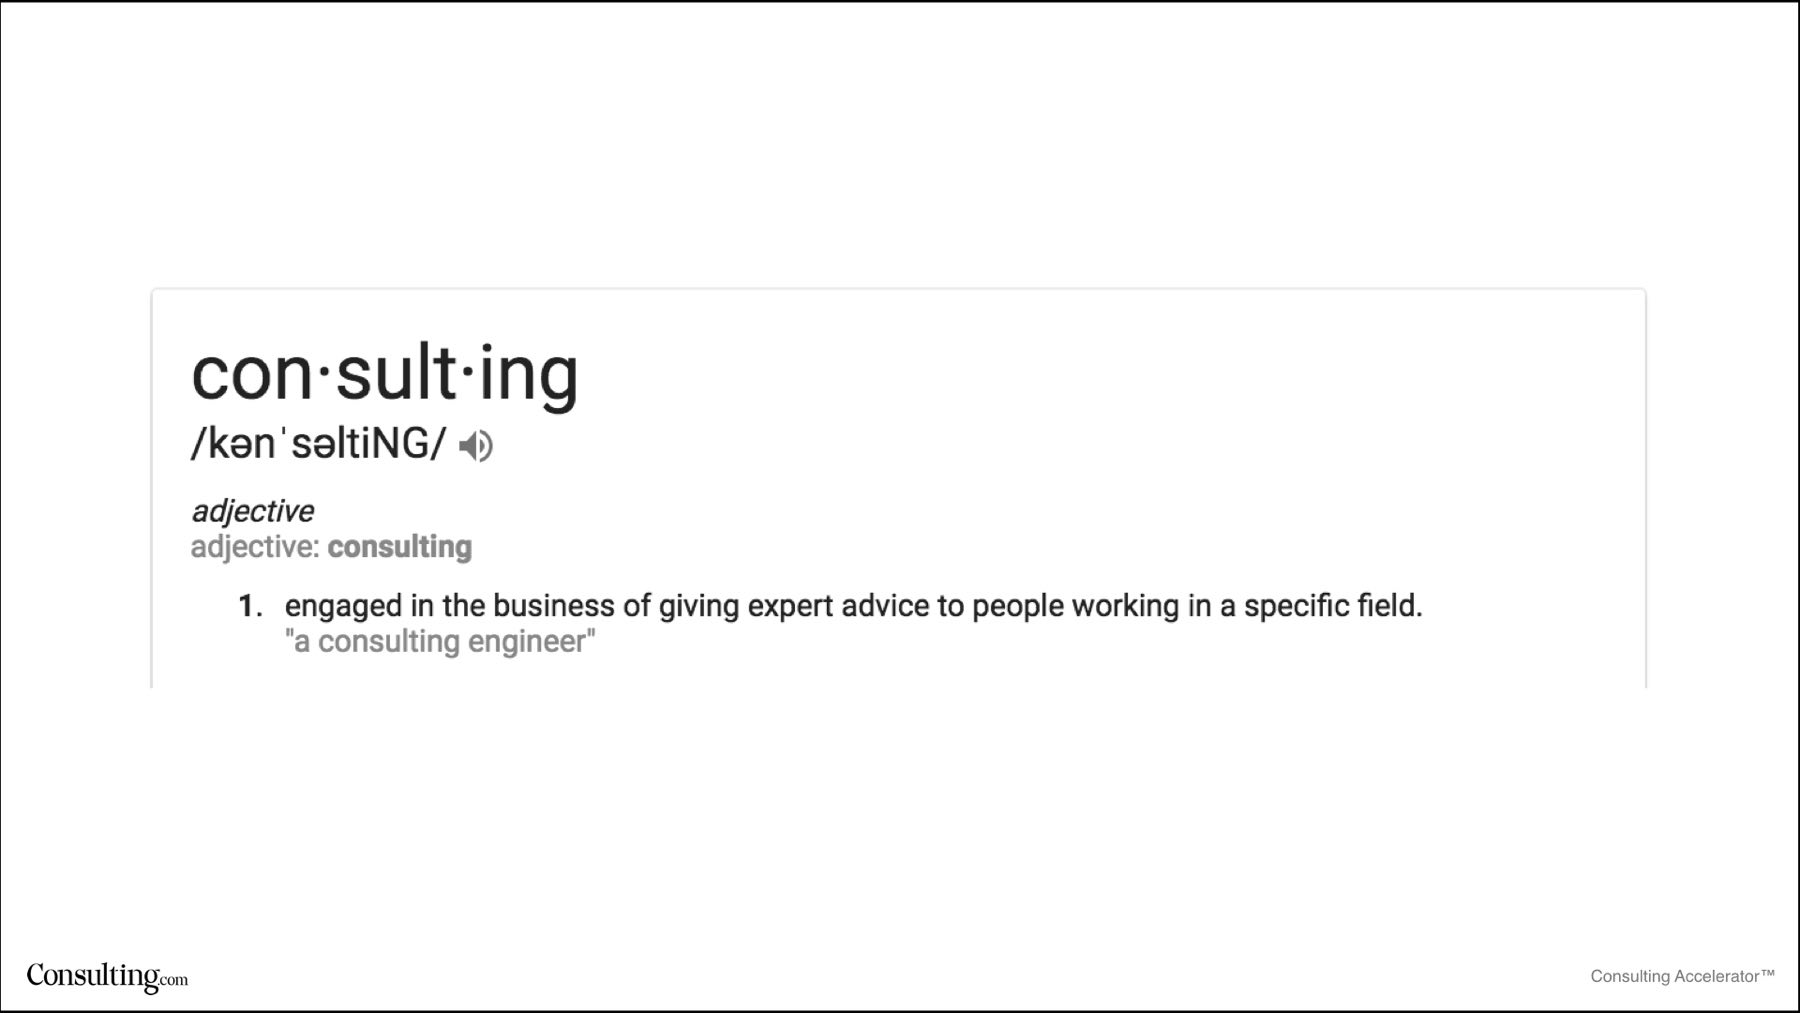 Consulting Definition